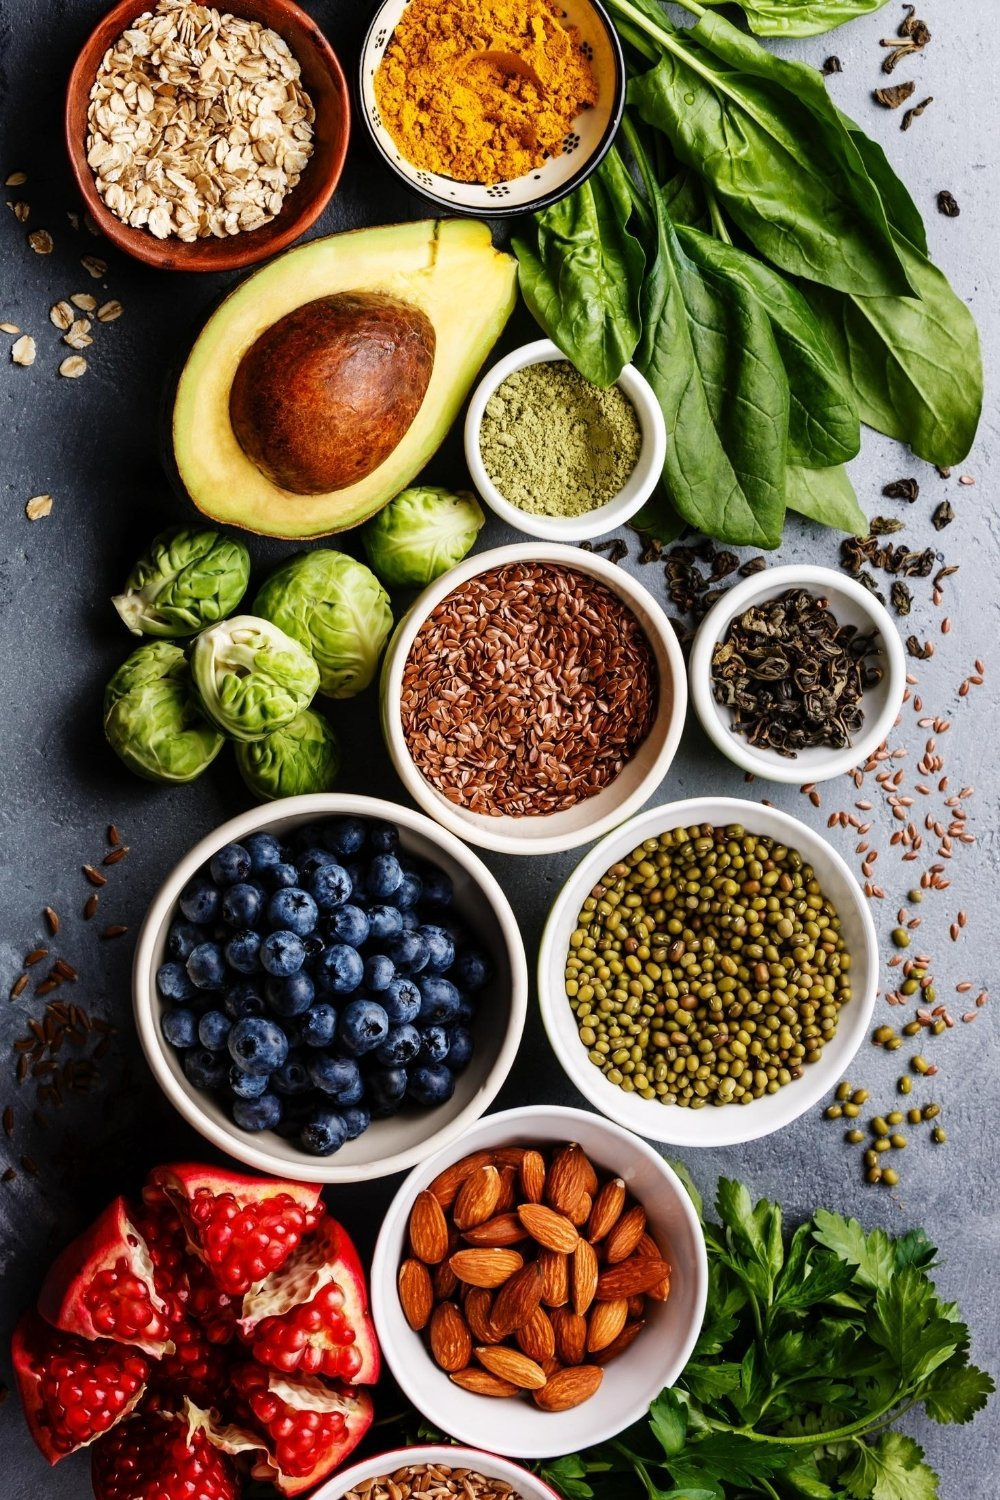 A variety of healthy naturally gluten free foods